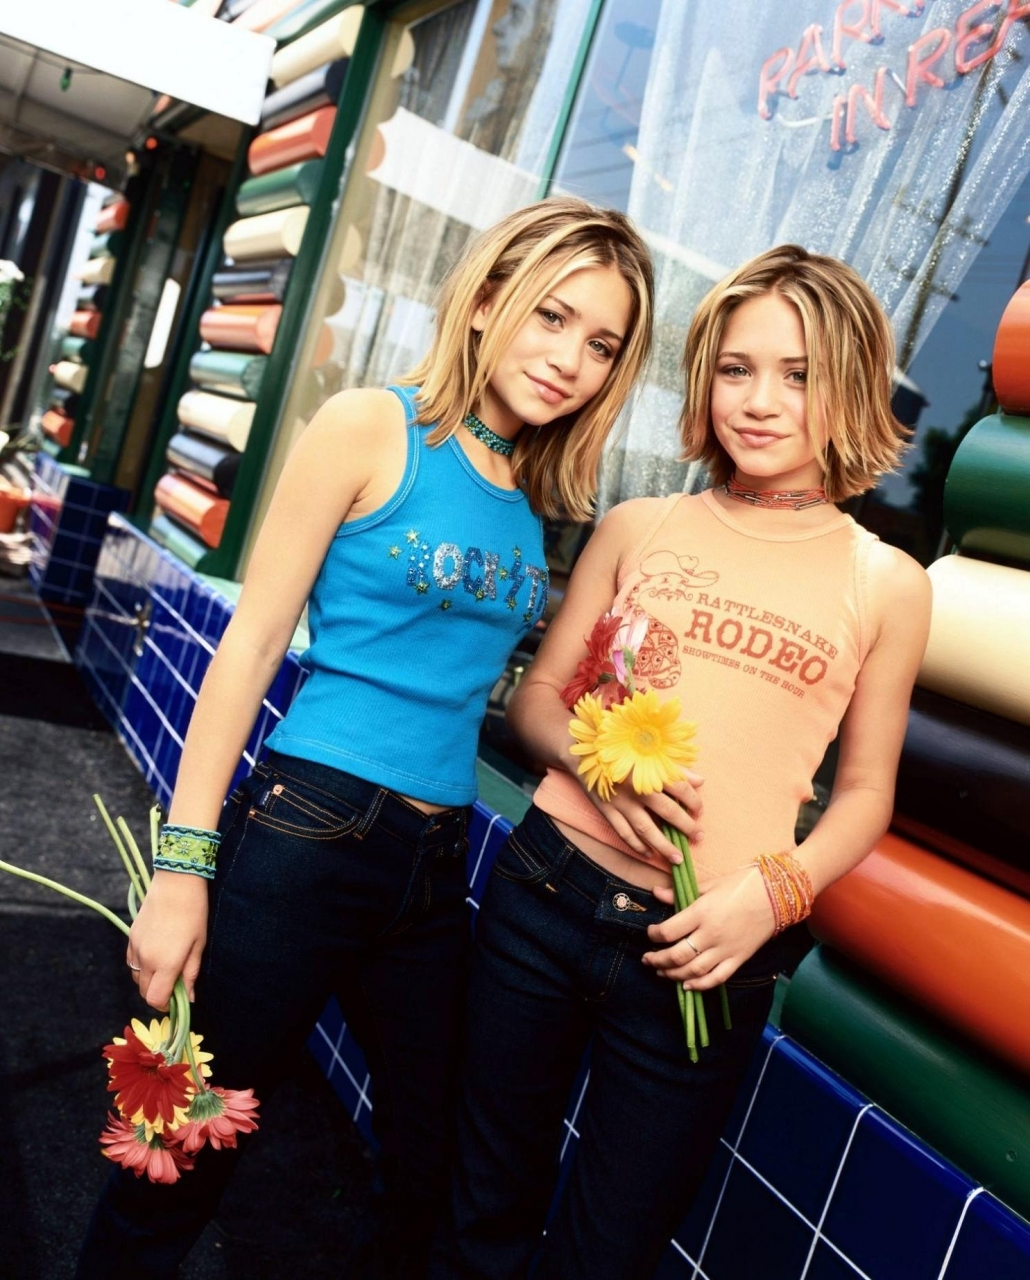 One olsentwins fake galleries nude pics of the olsen twins